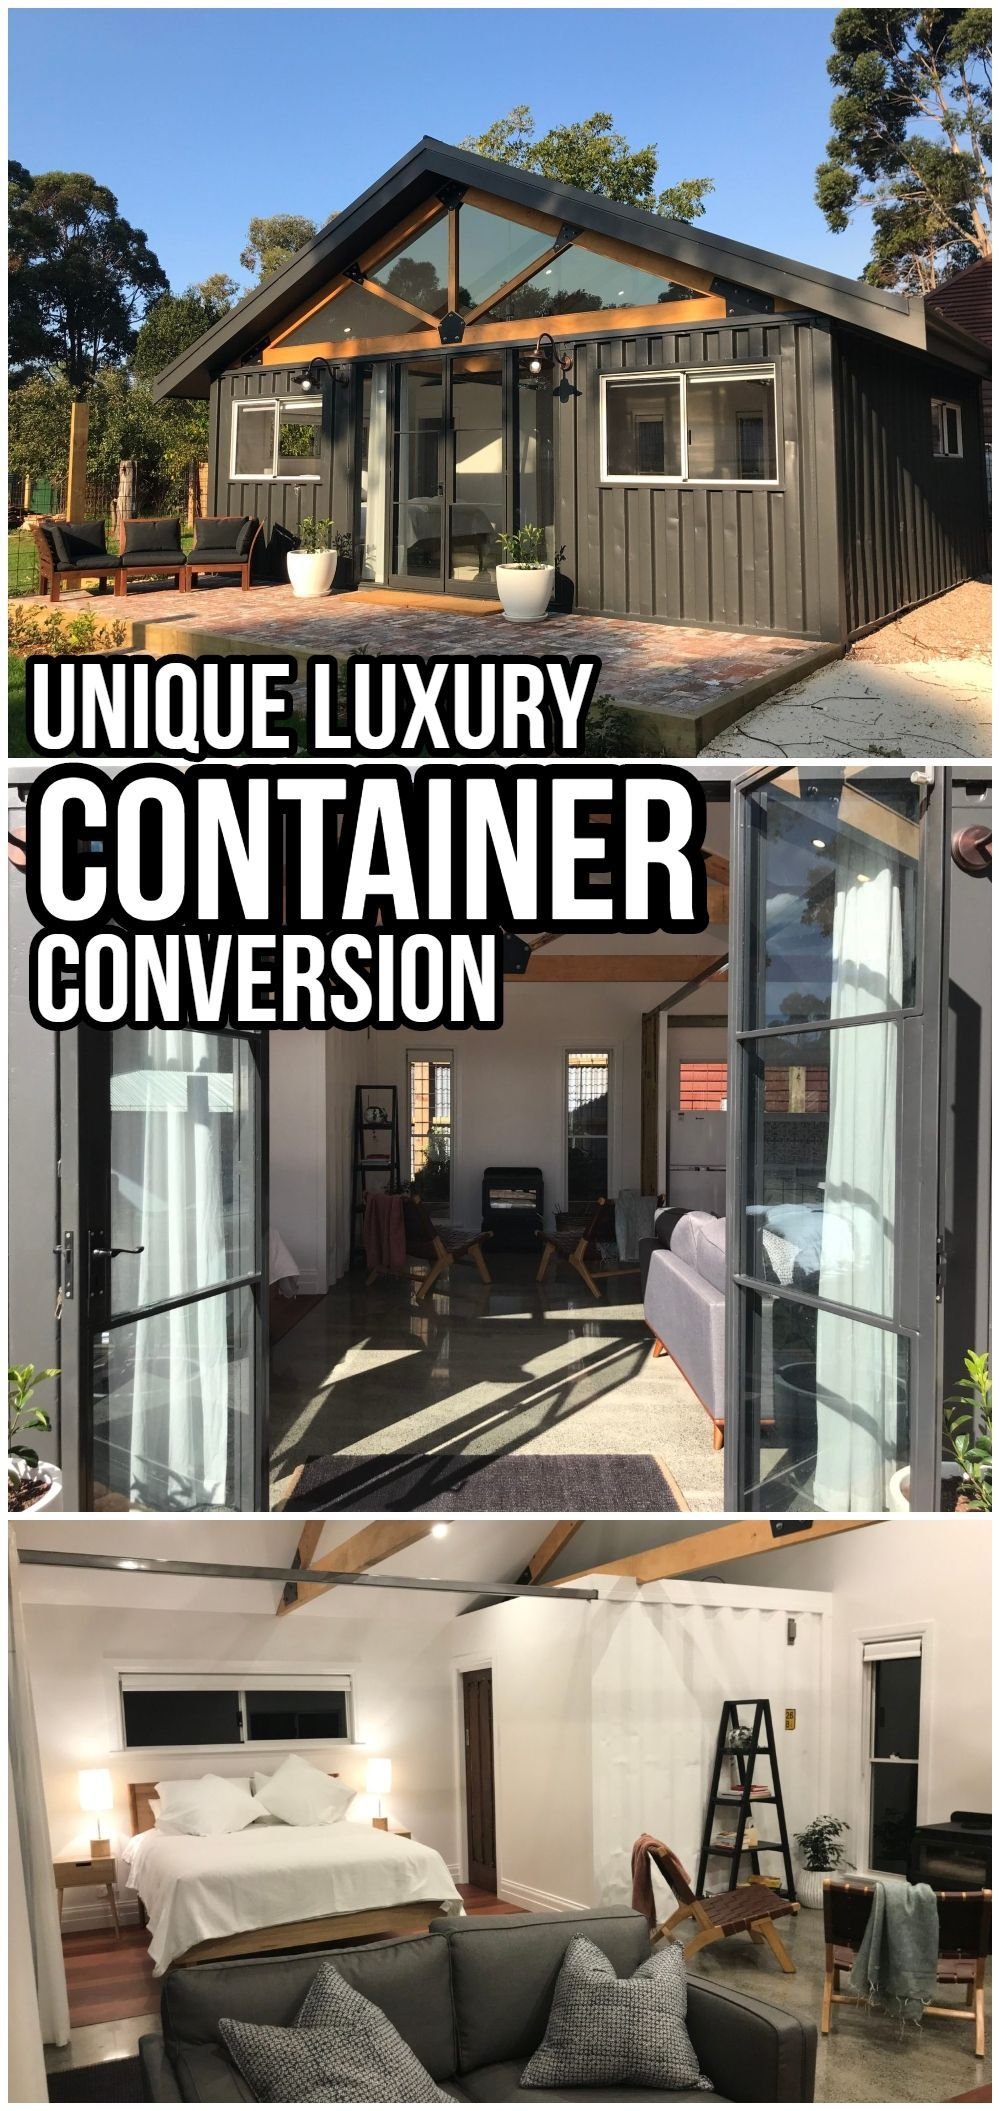 Unique Luxury Container Conversion from Australia - Living in a Container